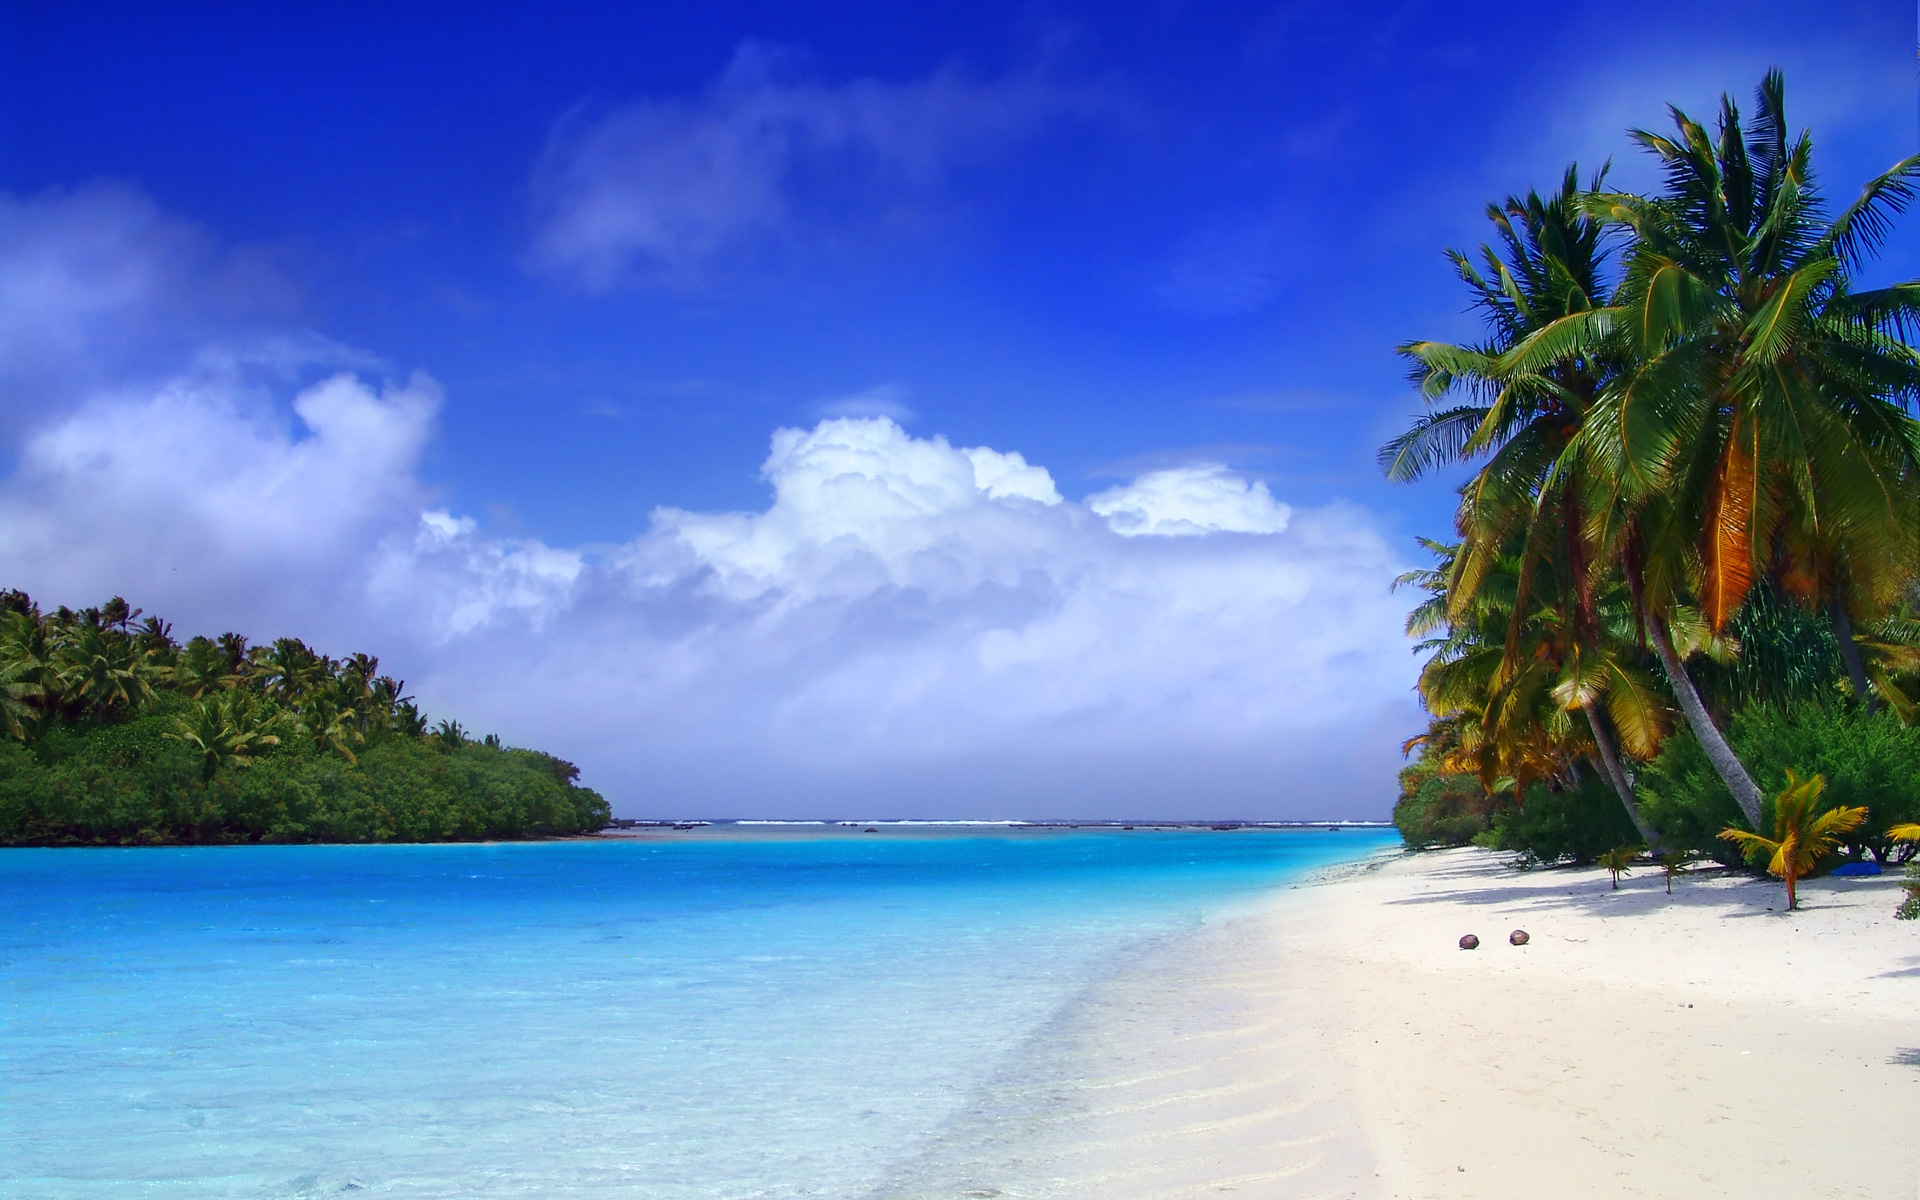 Paradise Beach Wallpaper images 1920x1200